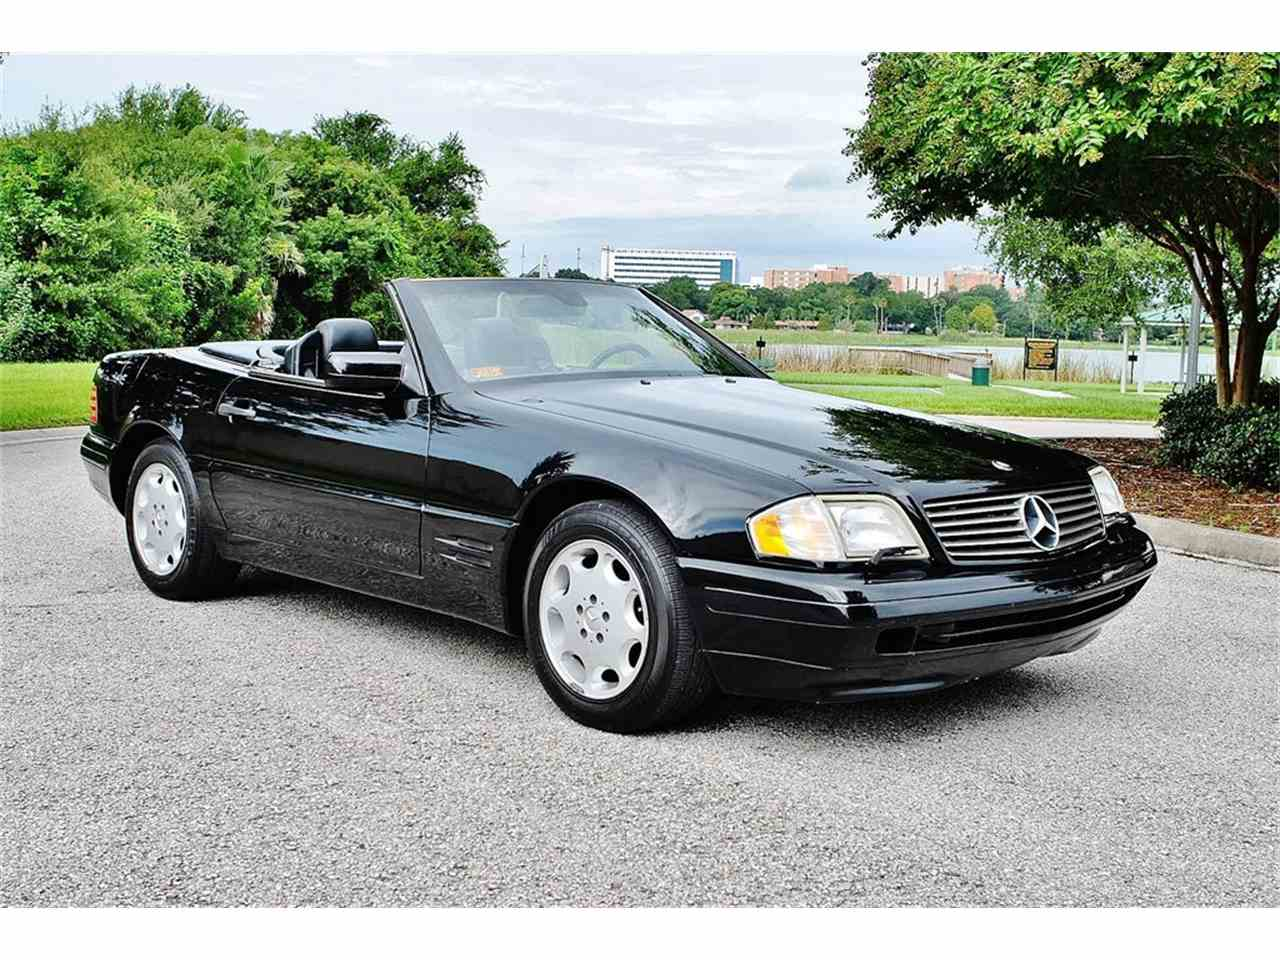 Large Picture of 1997 Mercedes-Benz SL-Class located in Florida - $13,500.00 - KCTC